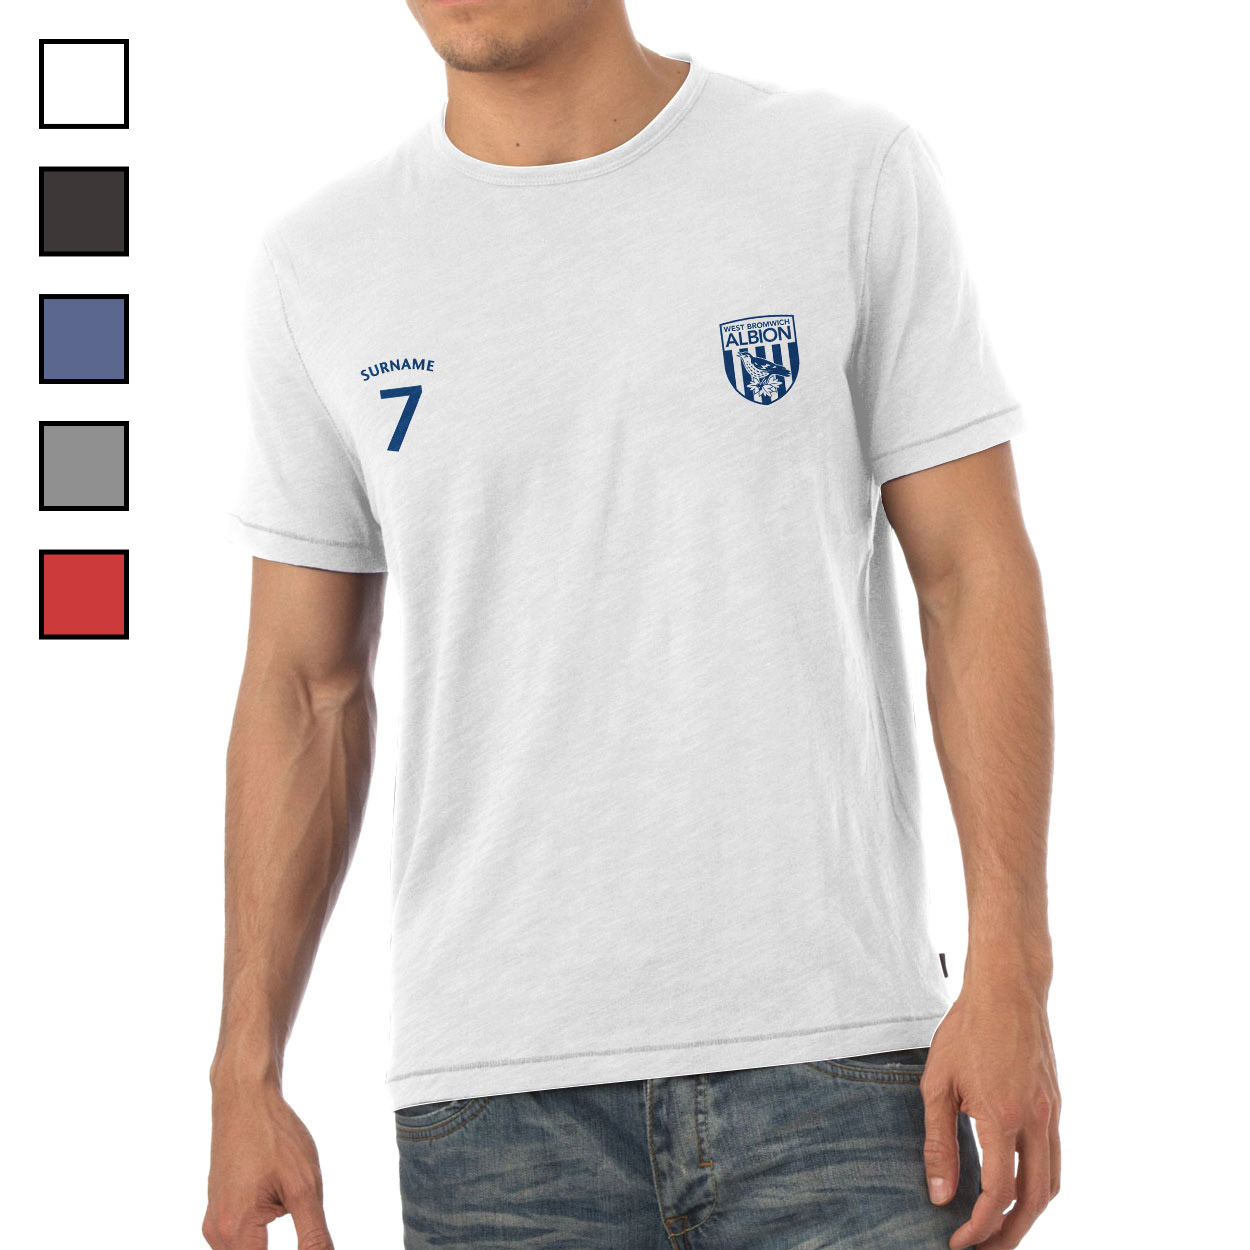 West Bromwich Albion FC Mens Sports T-Shirt